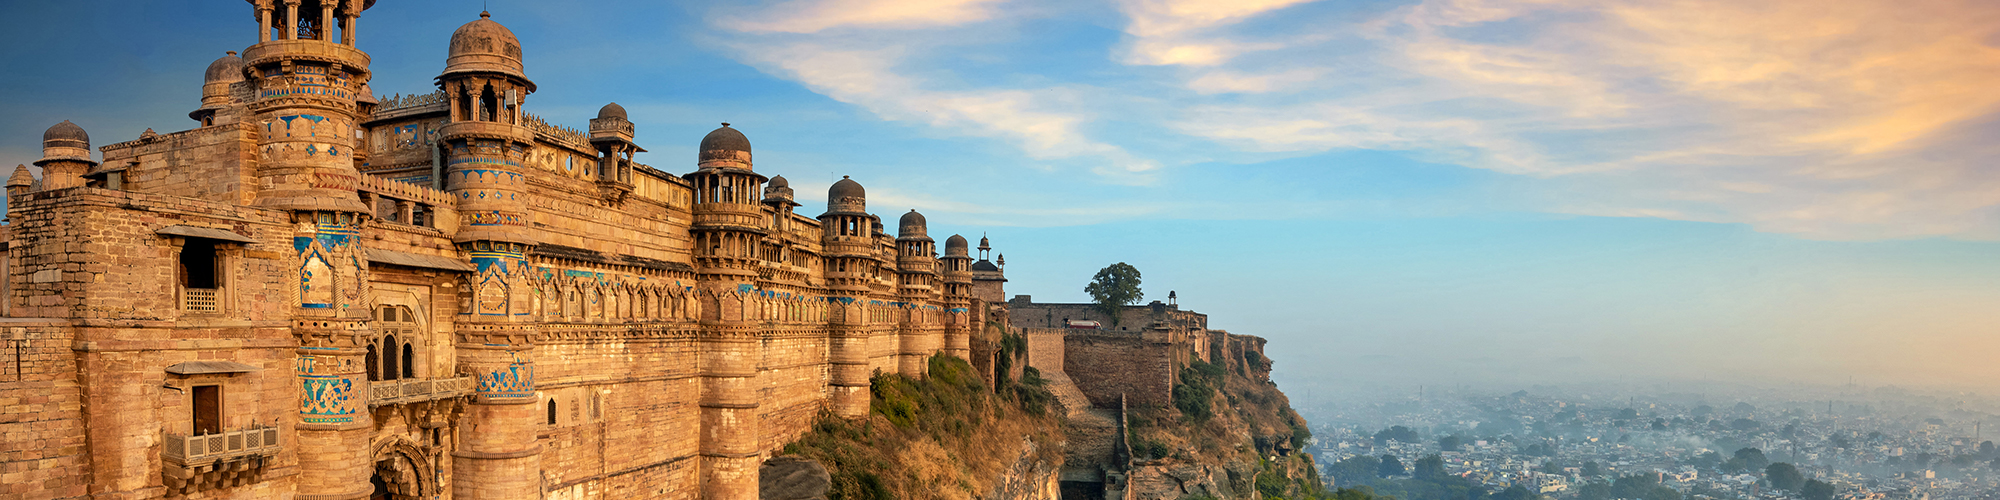 15 Places to Visit in India During June